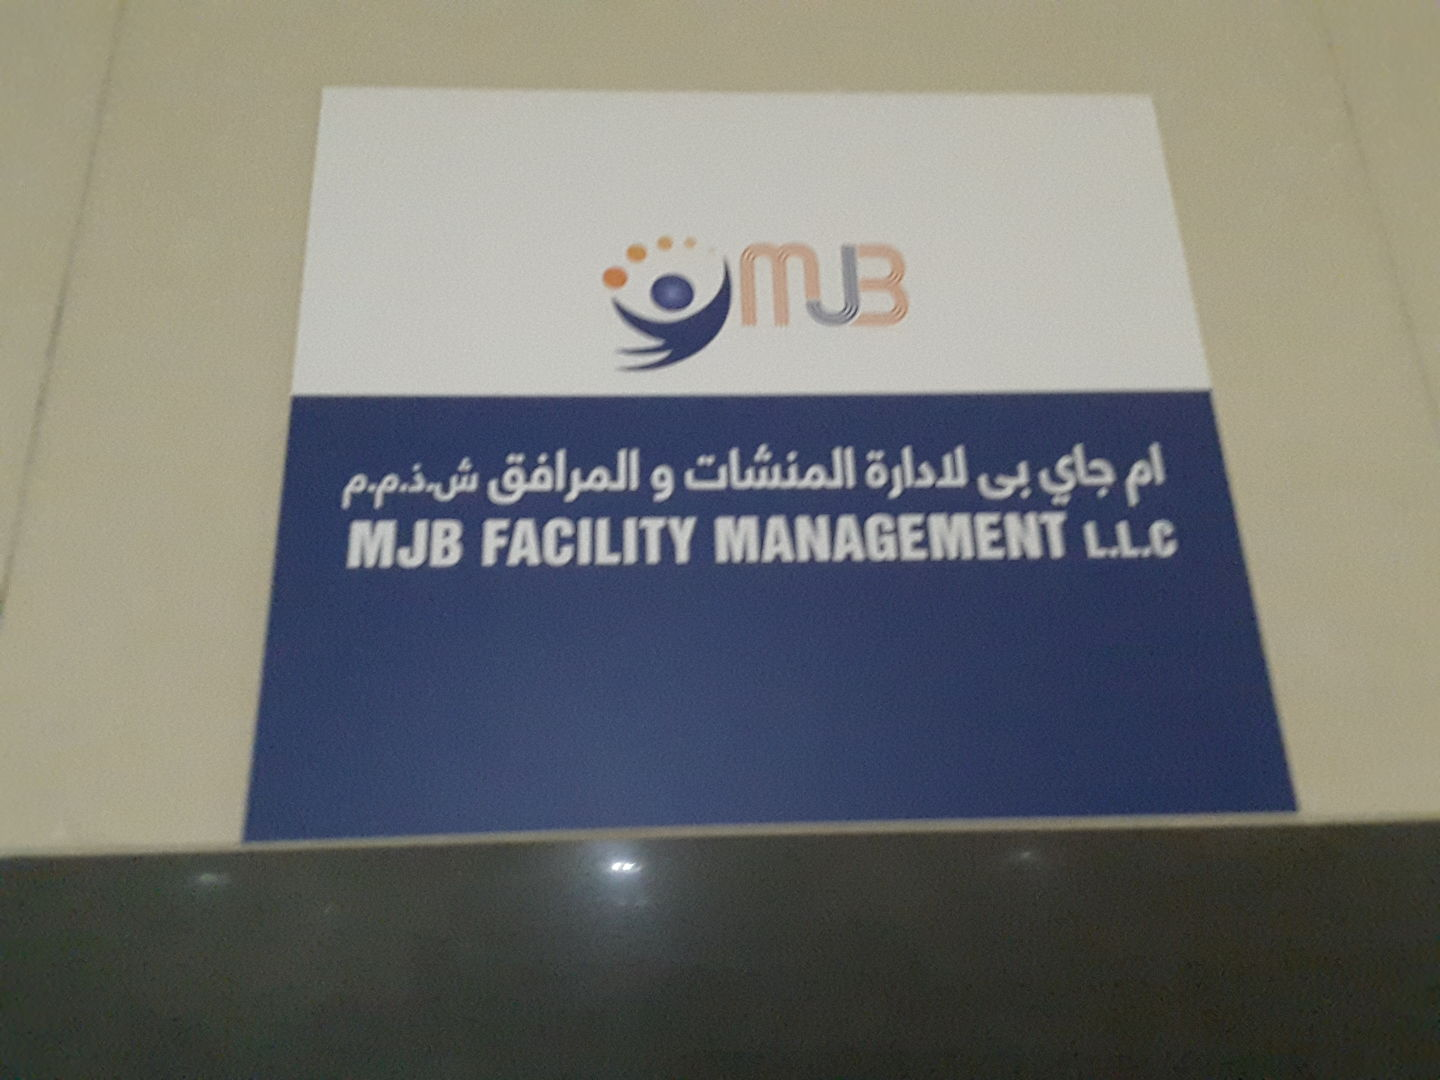 HiDubai-business-mjb-facility-management-b2b-services-business-consultation-services-business-bay-dubai